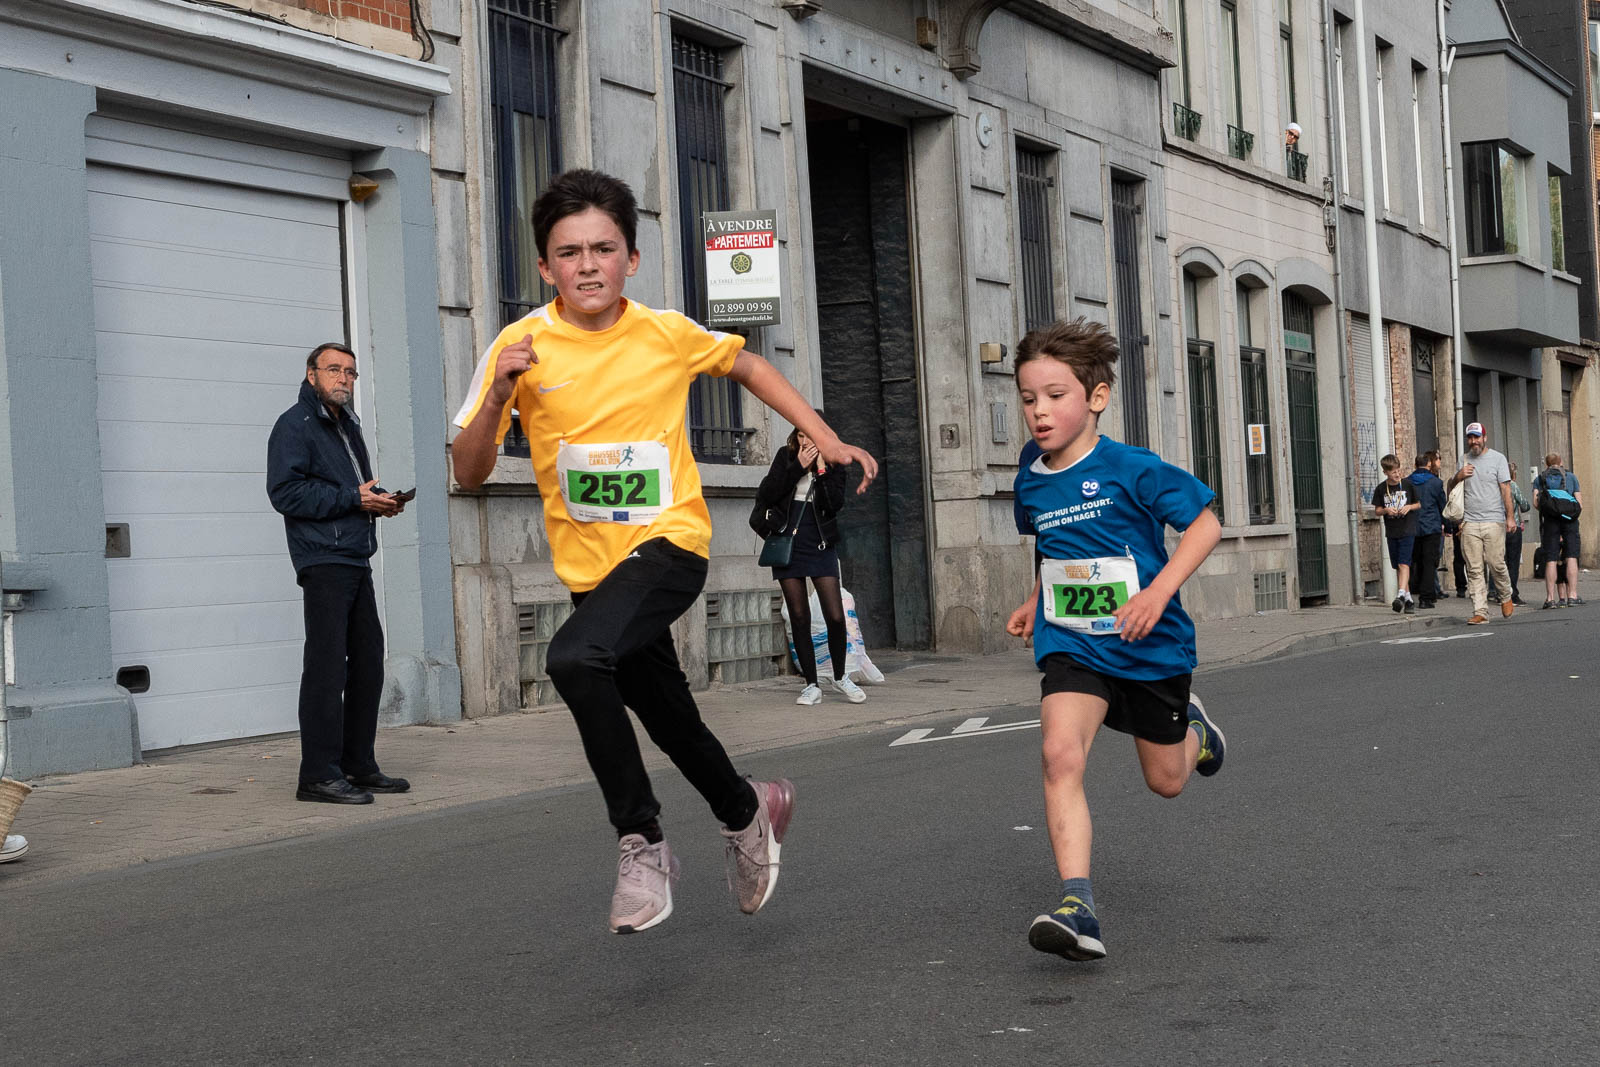 PIC_EVENT_20181020_BRUSSELS-CANAL-RUN_NIKON_008.jpg